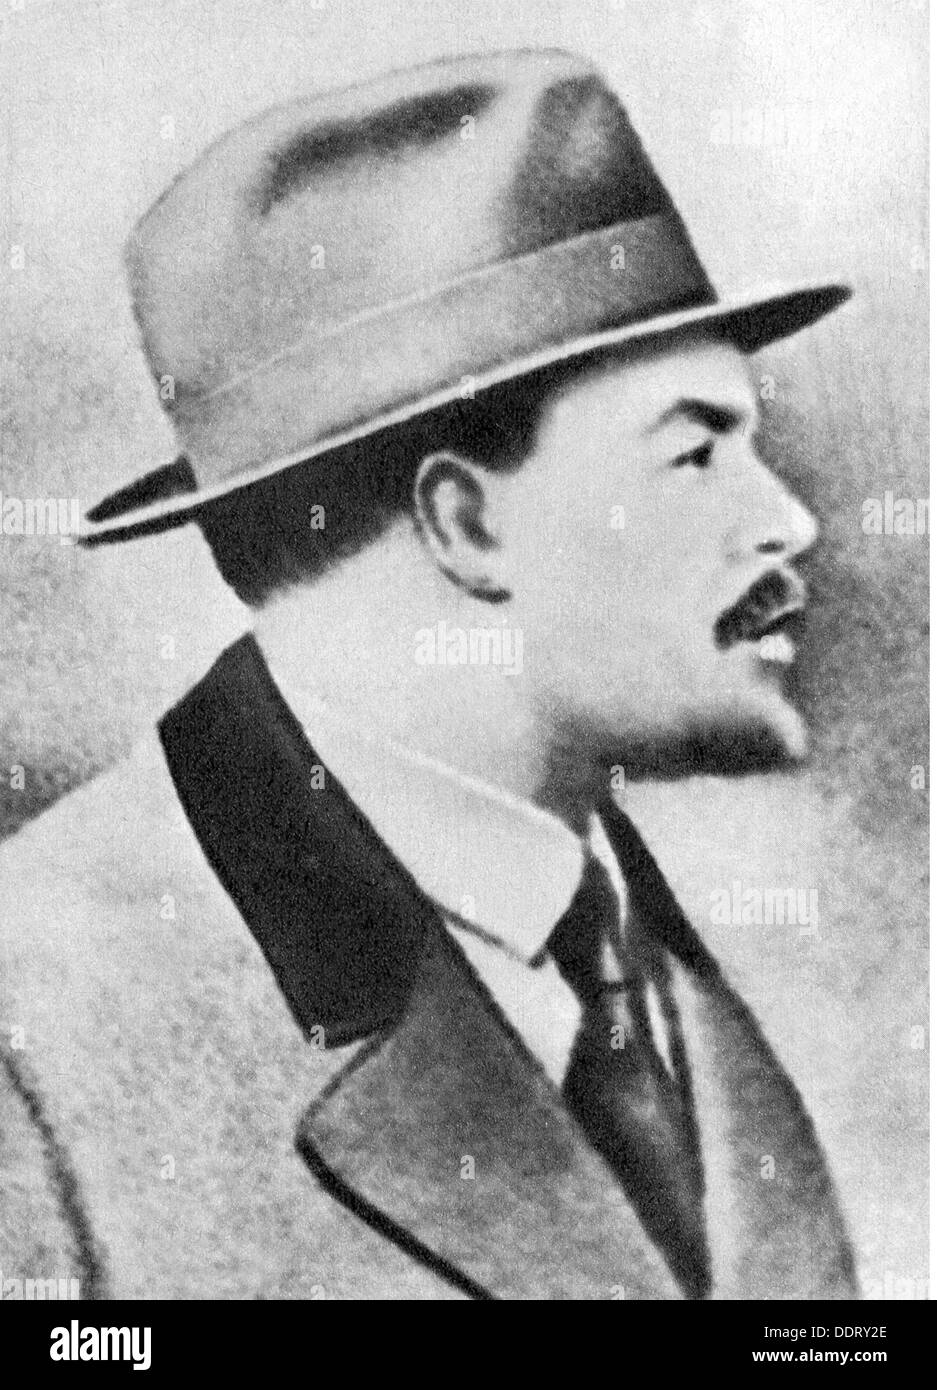 Lenin (Vladimir Ilyich Ulyanov), 22.4.1870 - 21.1.1924, Russian politician, portrait, 1910s, from: 'Neues Leben', number 10, Berlin, 1969, Additional-Rights-Clearances-NA - Stock Image